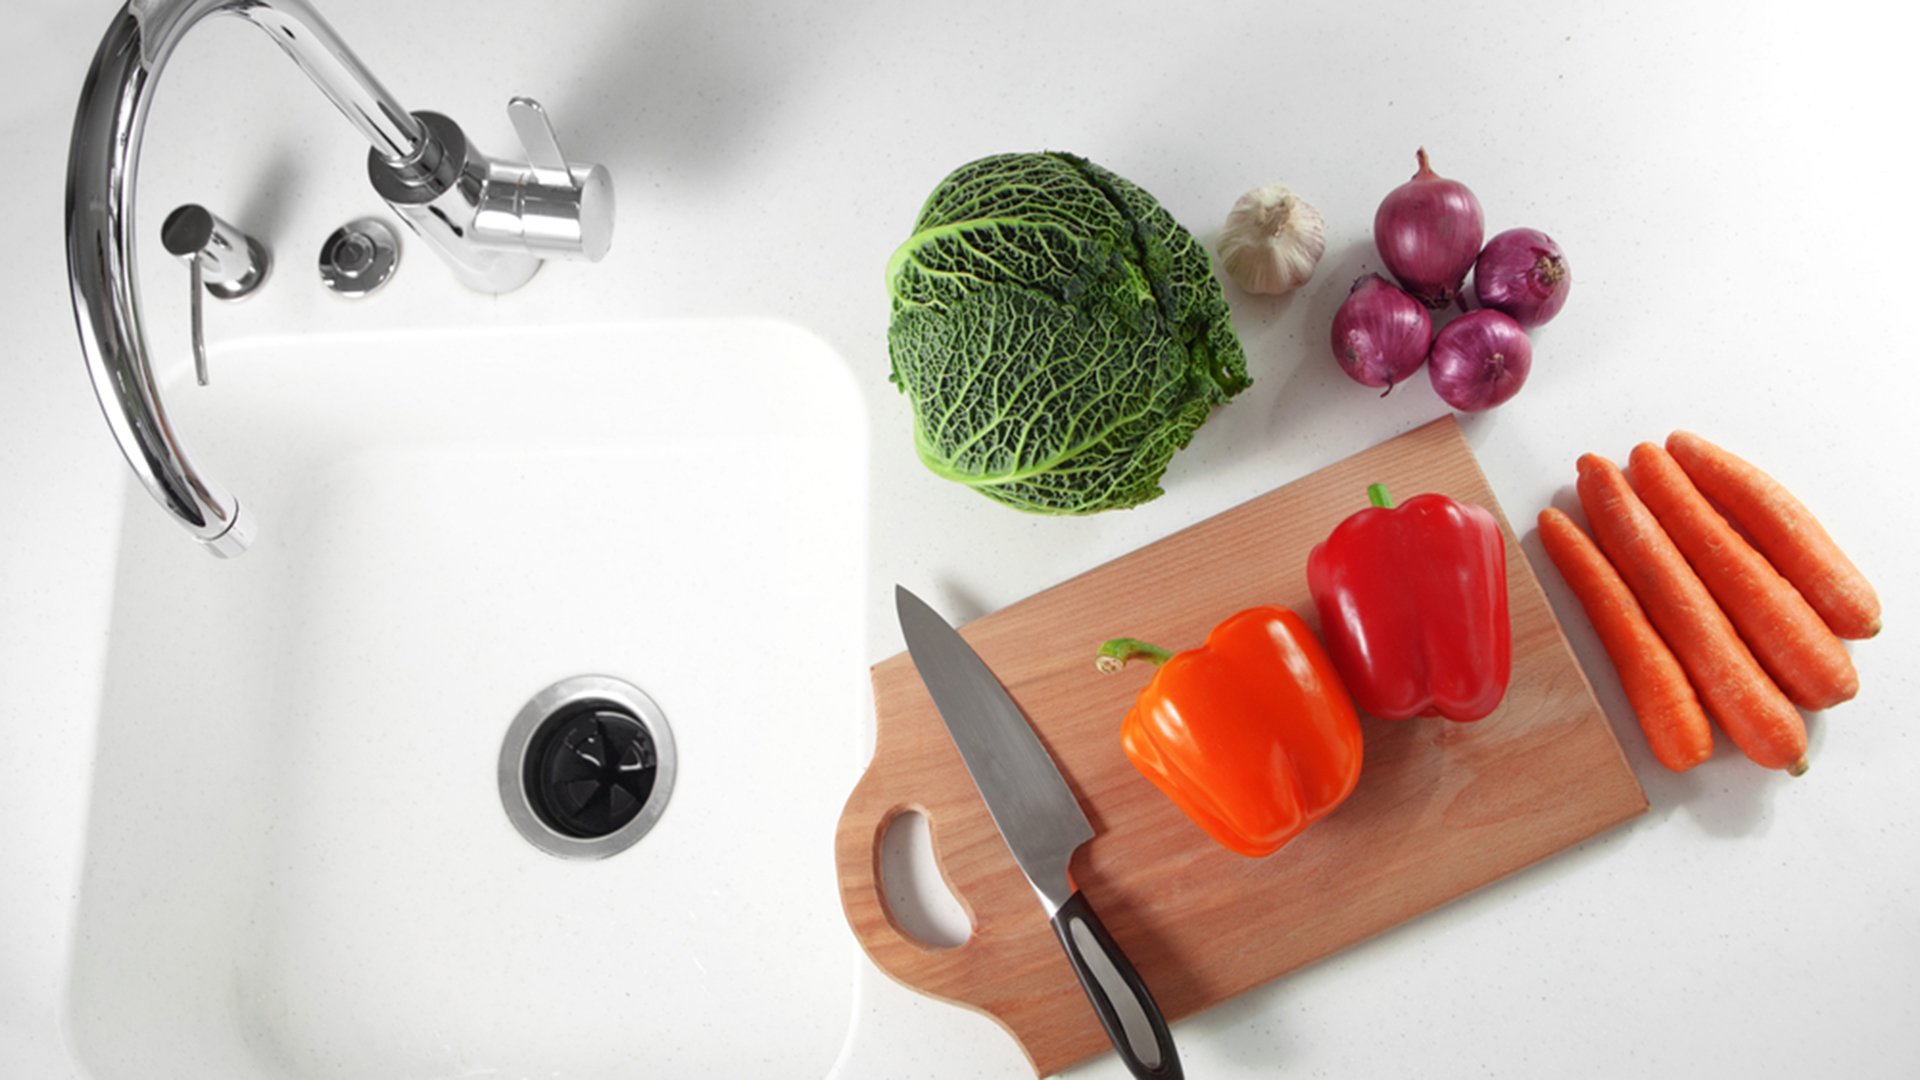 How To Clean Your Garbage Disposal And How Often To Do It